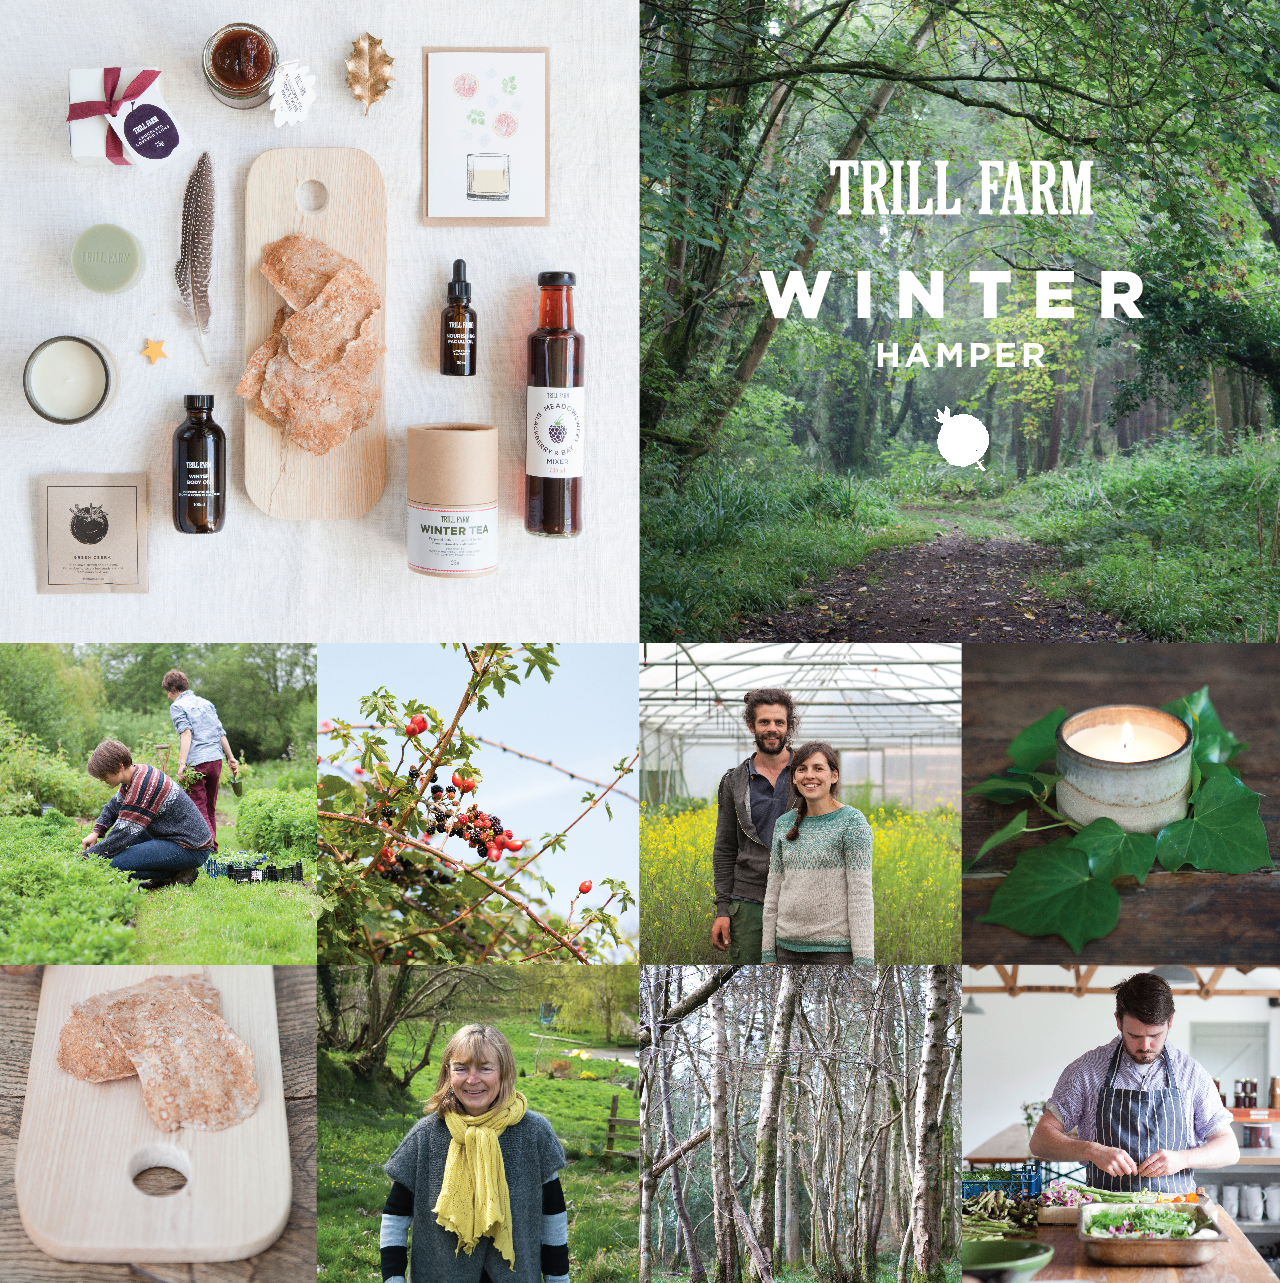 Trill Farm Winter Hamper